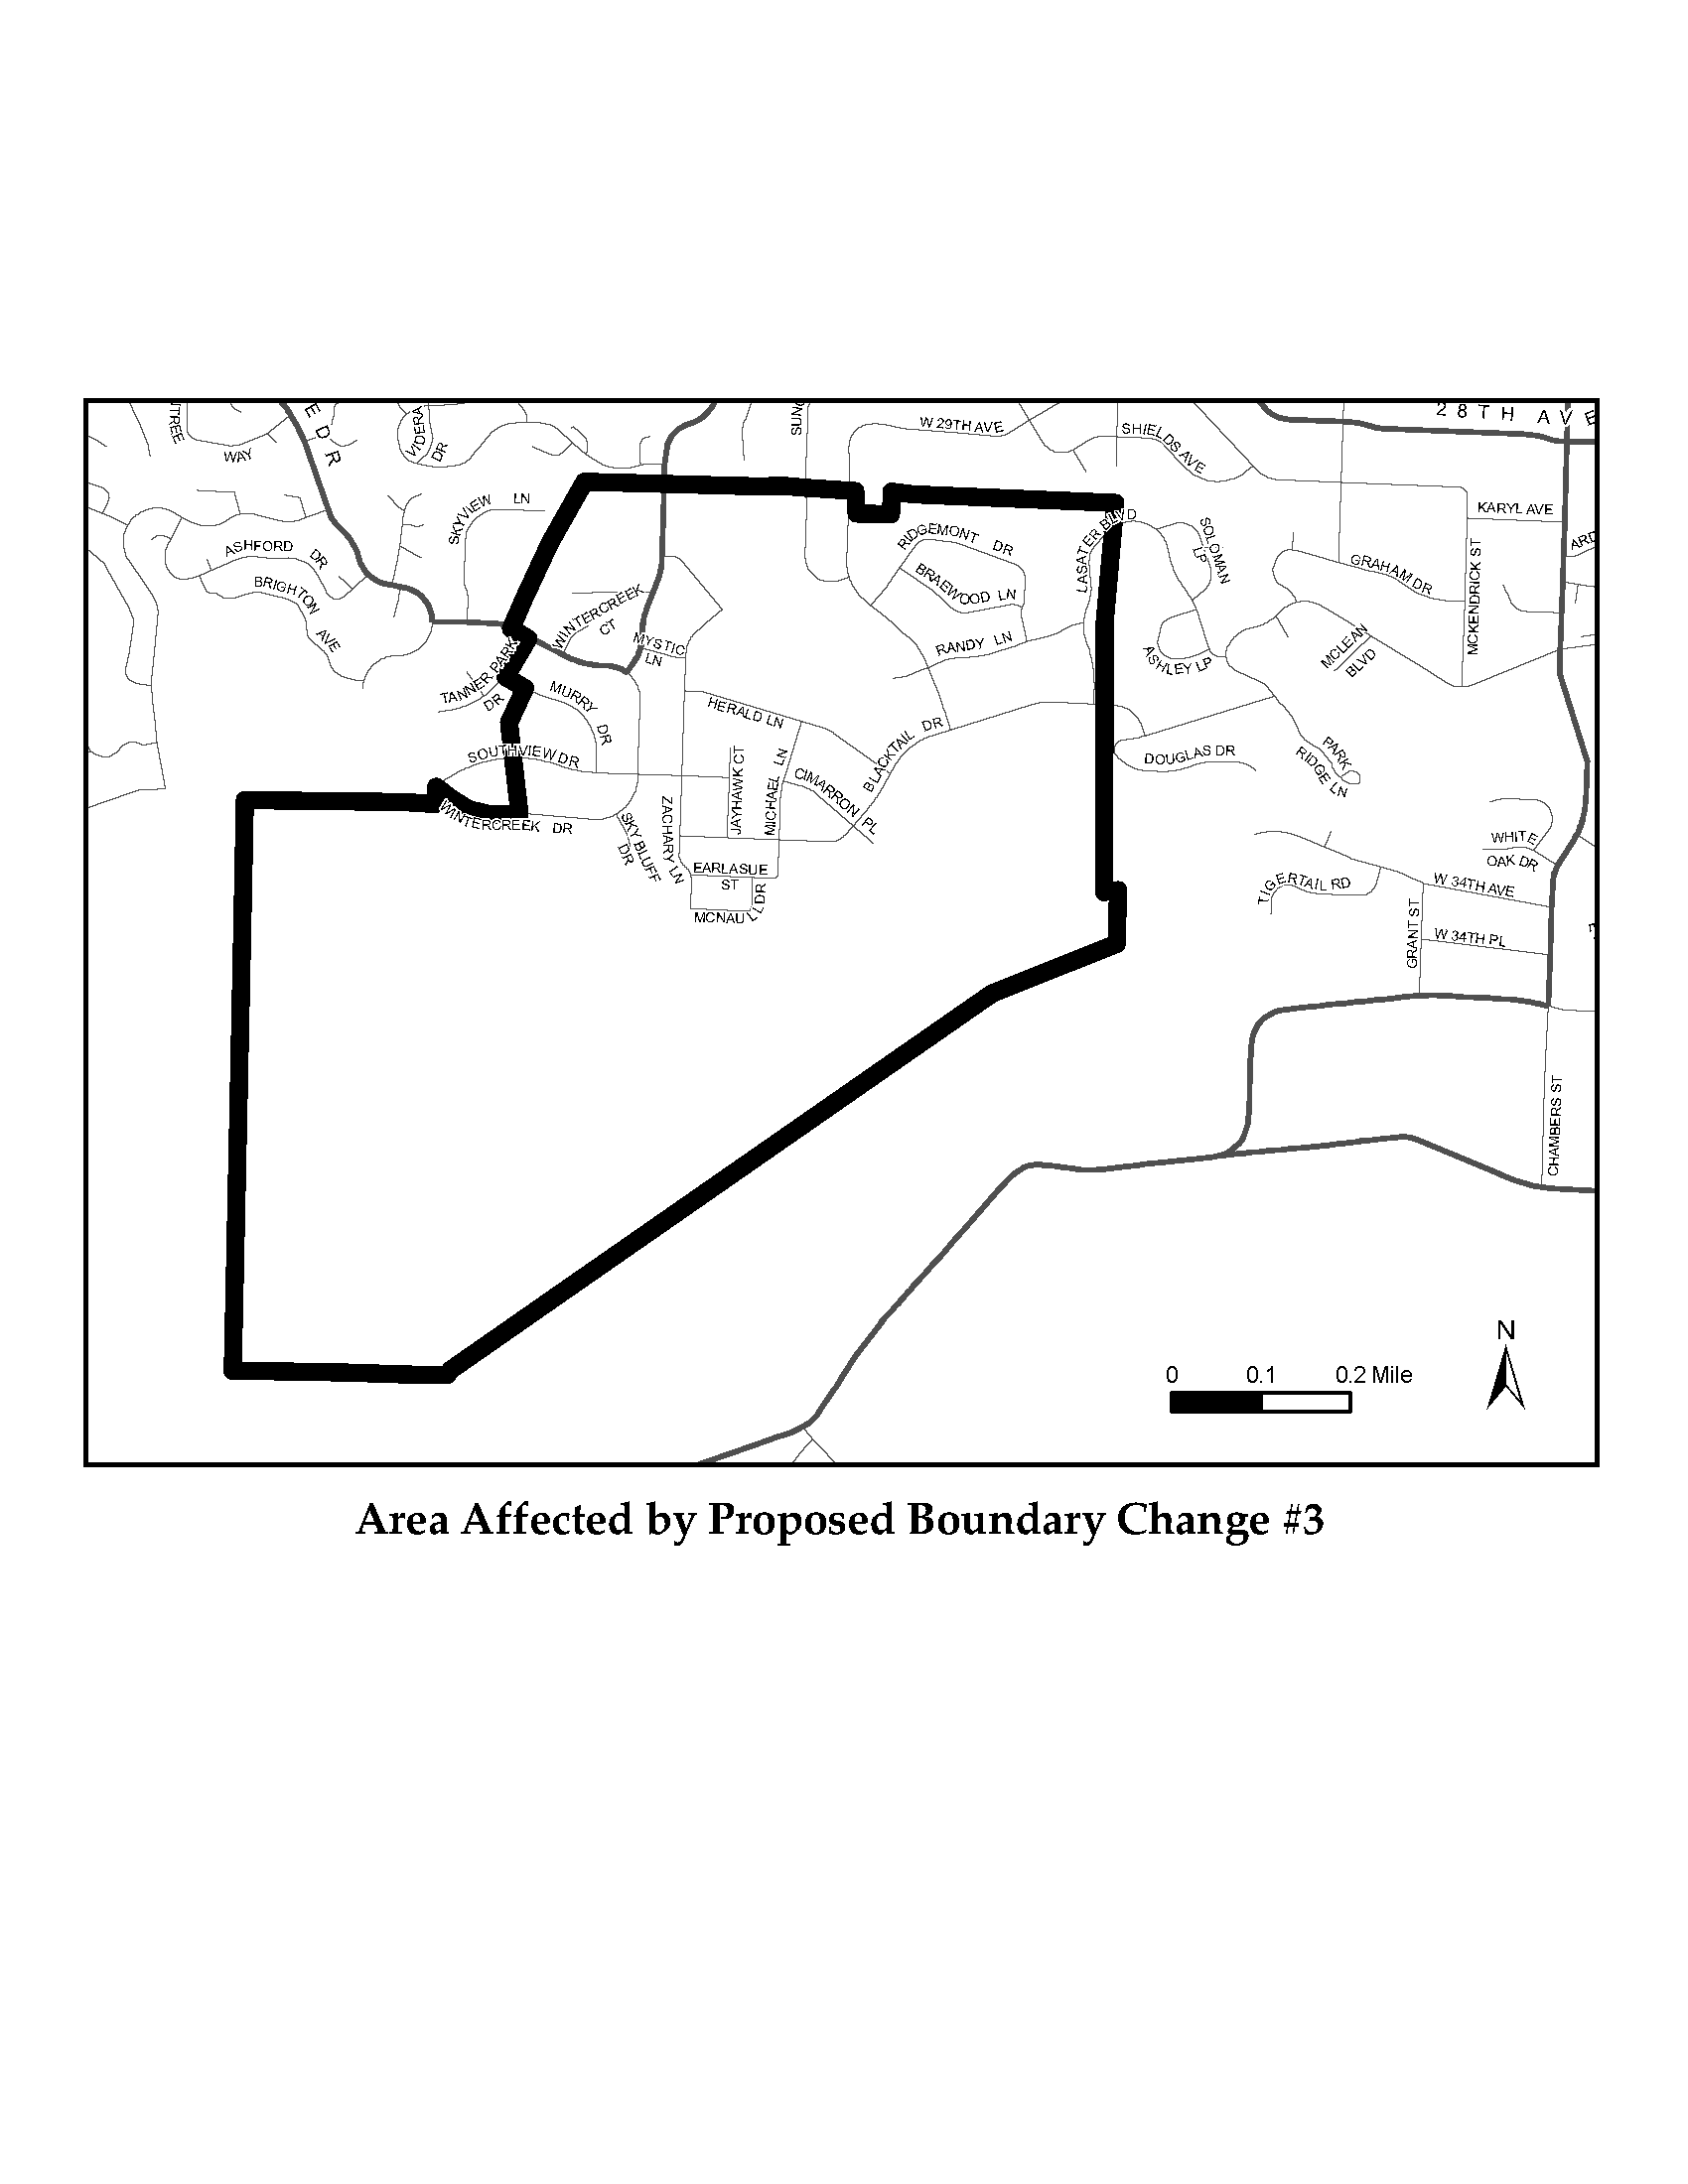 Questions Raised During The Process Led To A Slight Change In Proposed Boundary Neighborhood Residents Suggested Altering Affected Area So That All